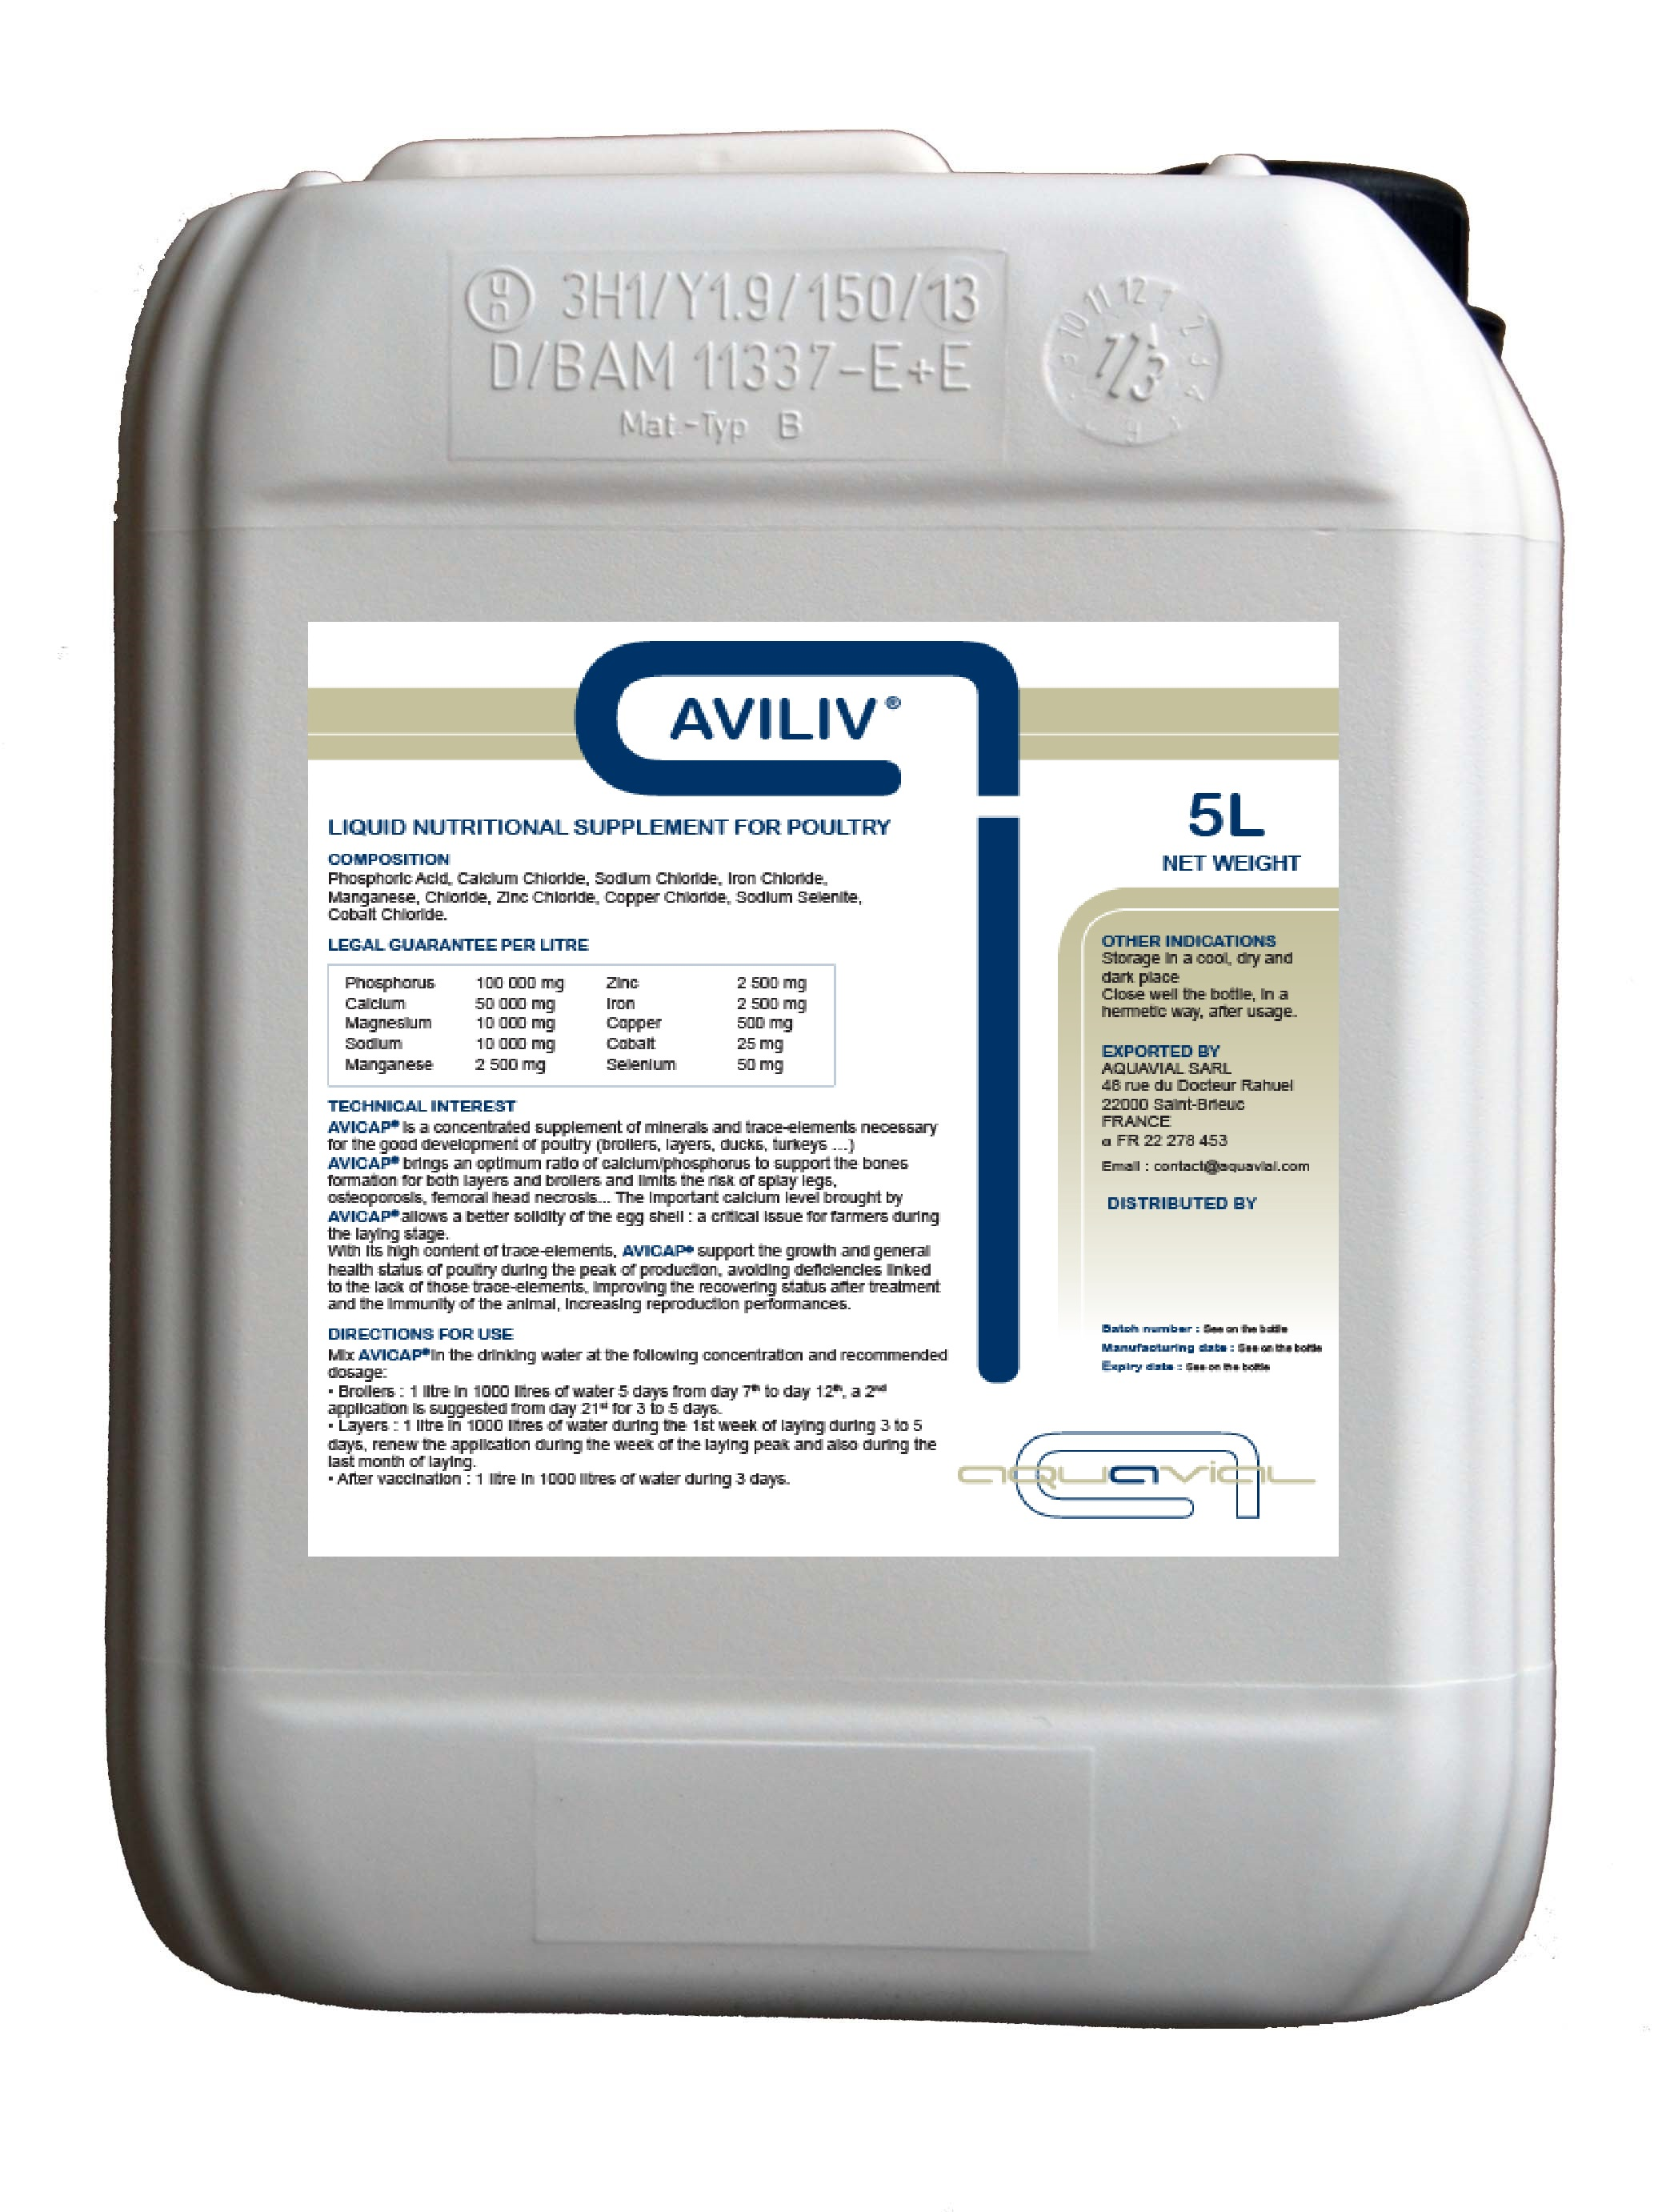 Aviliv - Aquavial liquid nutritional supplement for poultry